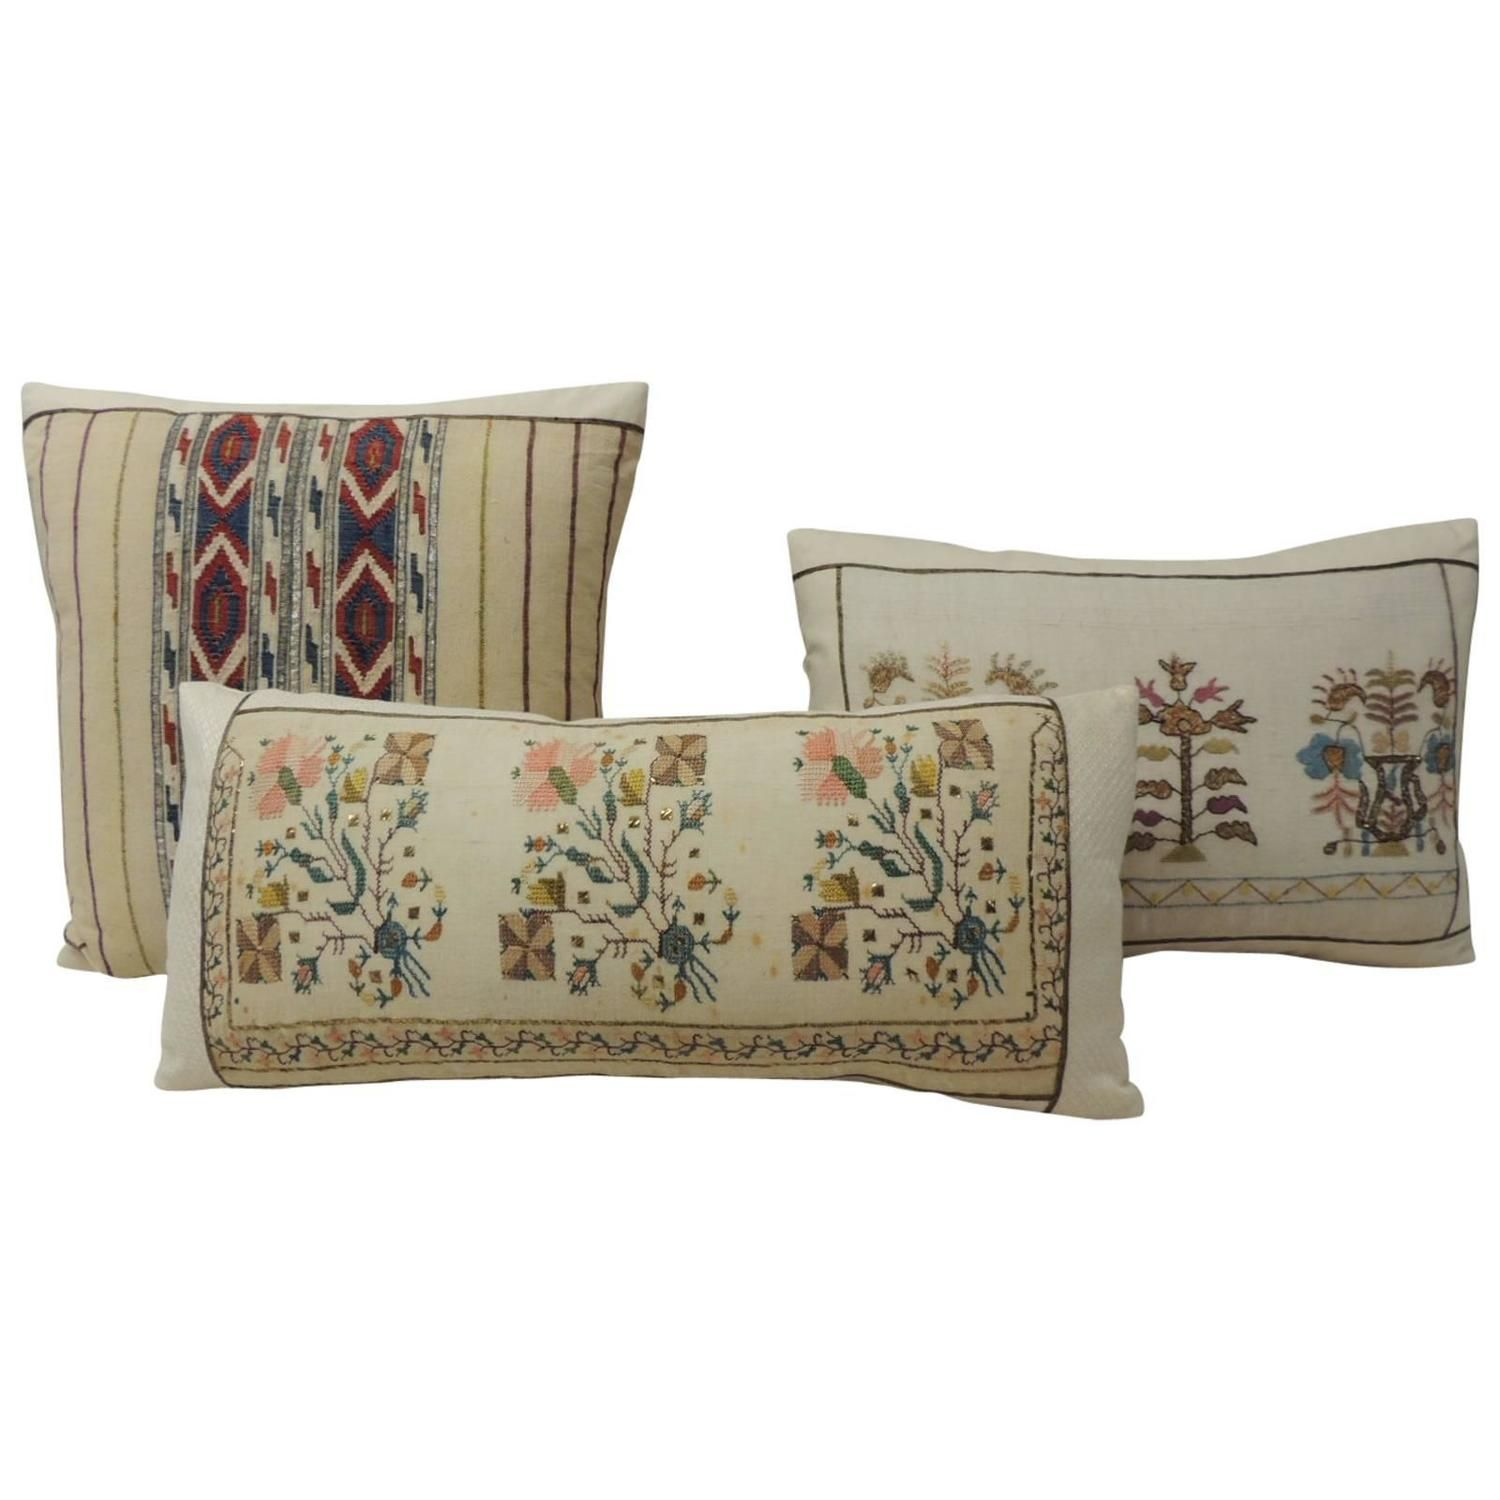 19th Century Turkish Embroidered Linen Pillows | From a unique collection of antique and modern pillows and throws at https://www.1stdibs.com/furniture/more-furniture-collectibles/pillows-throws/